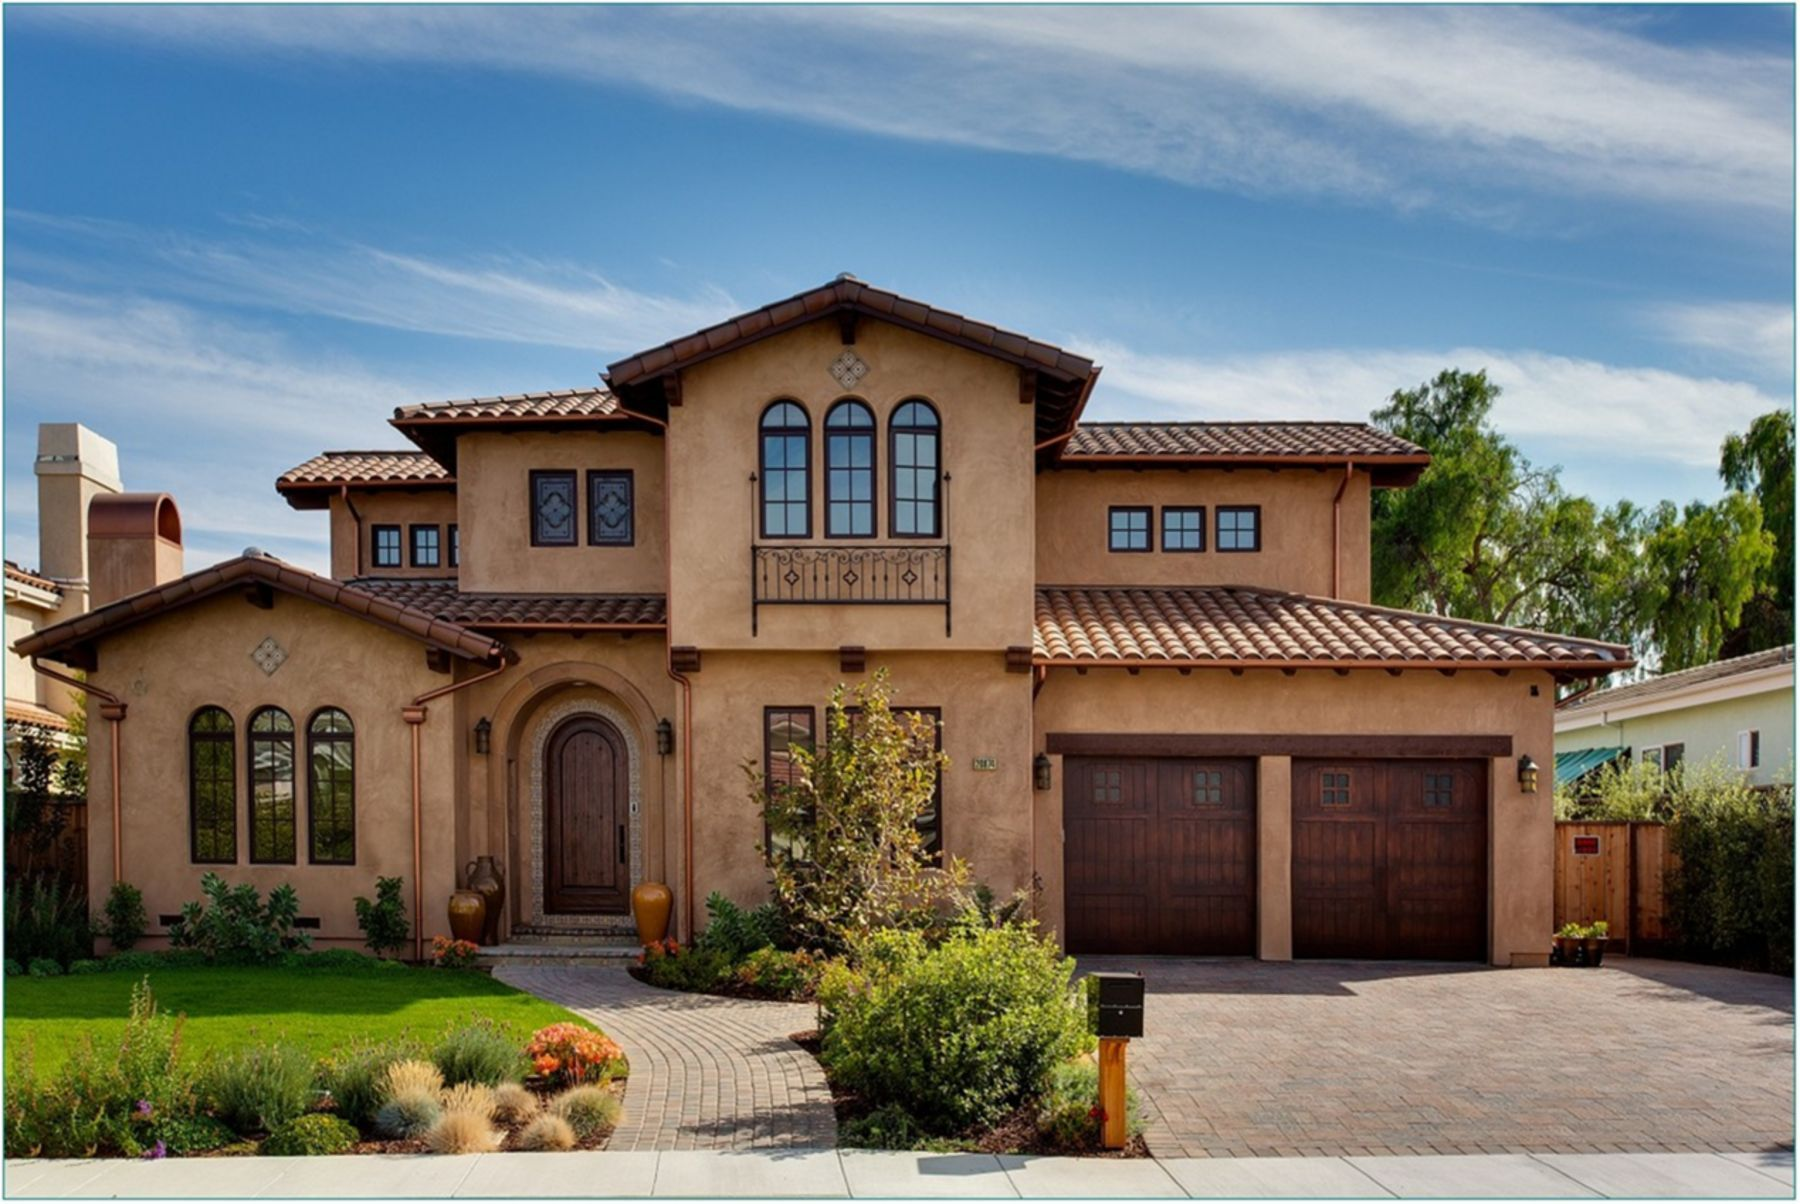 25 Top And Amazing House Styles That Will Inspire You Moolton In 2020 Tuscan Style Homes Spanish Style Homes Mediterranean Homes